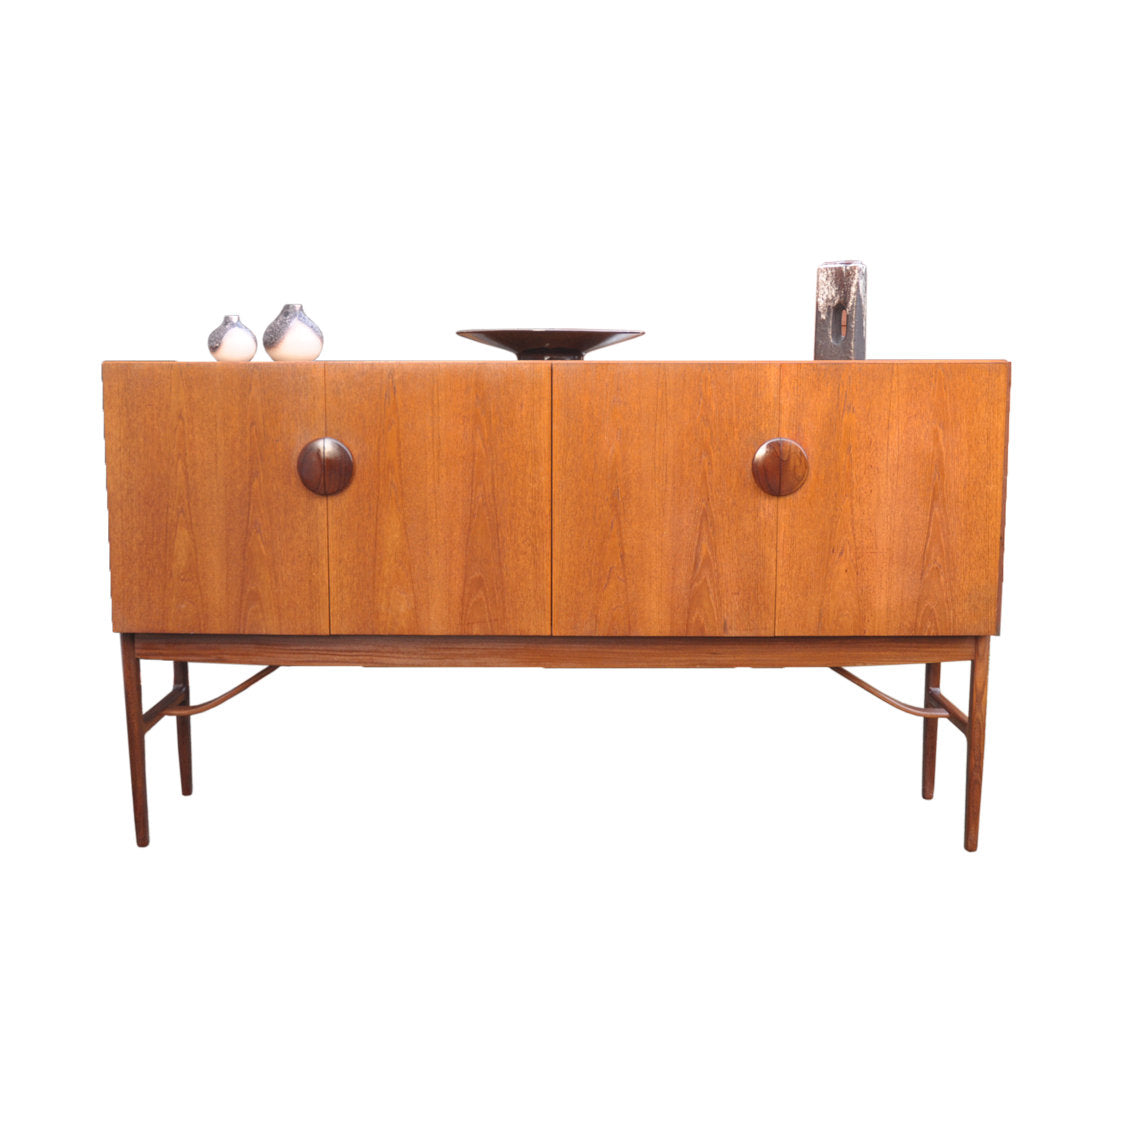 G Plan Highboard by Ib Kofod Larsen - AndersBrowne Mid Century Furniture